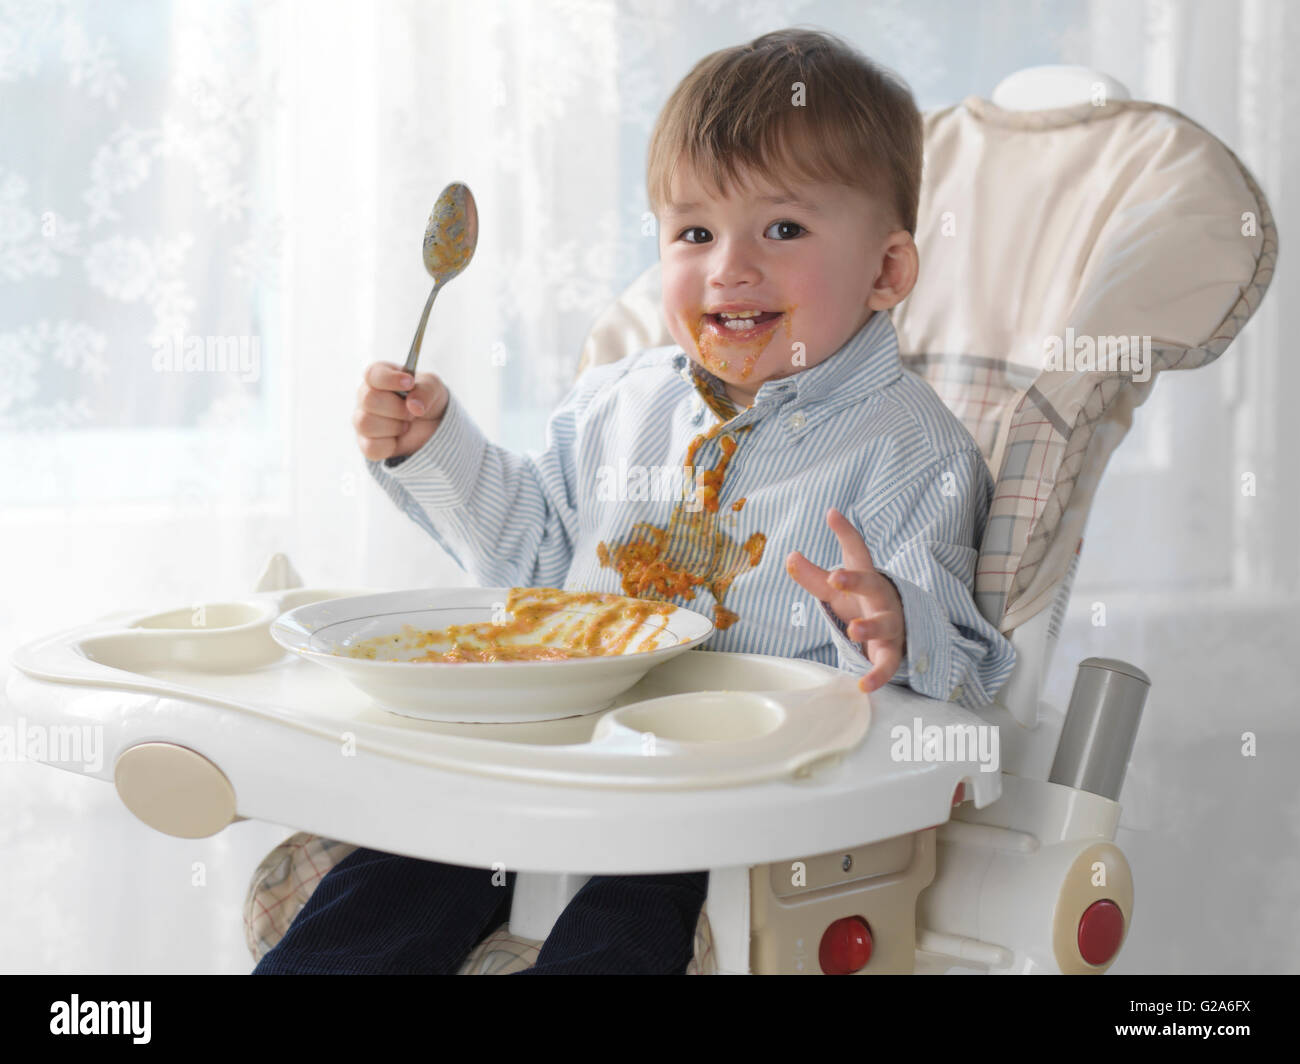 Toddler Boy Chair Toddler Boy Sitting In A High Chair Eating Soup With A